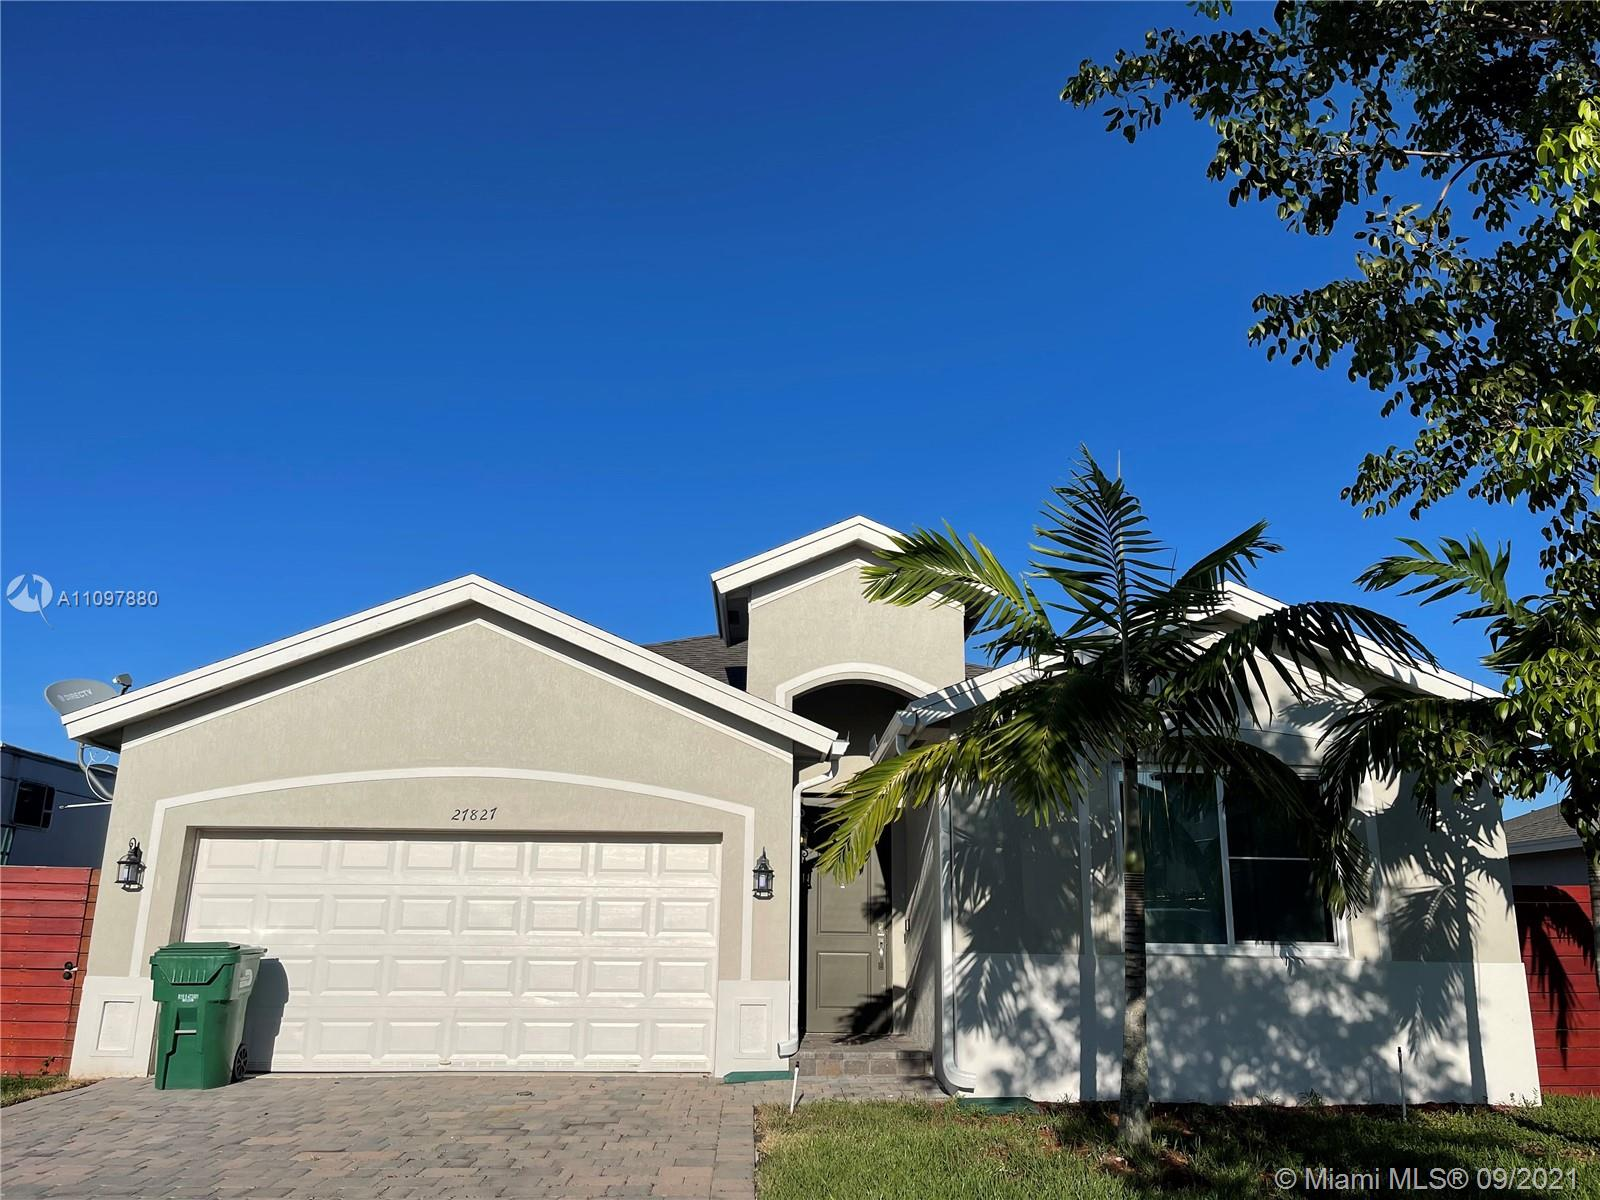 BEUTIFULL HOUSE 2018.Move in ready 4 bed 2 bath home,  tile floors, new laminate wood floor on bedroom. Large master bedroom with two closets, master bathroom features separate tub and shower. THE POOL OUTSIDE  STAYS, NO HOA. See showing intruction.